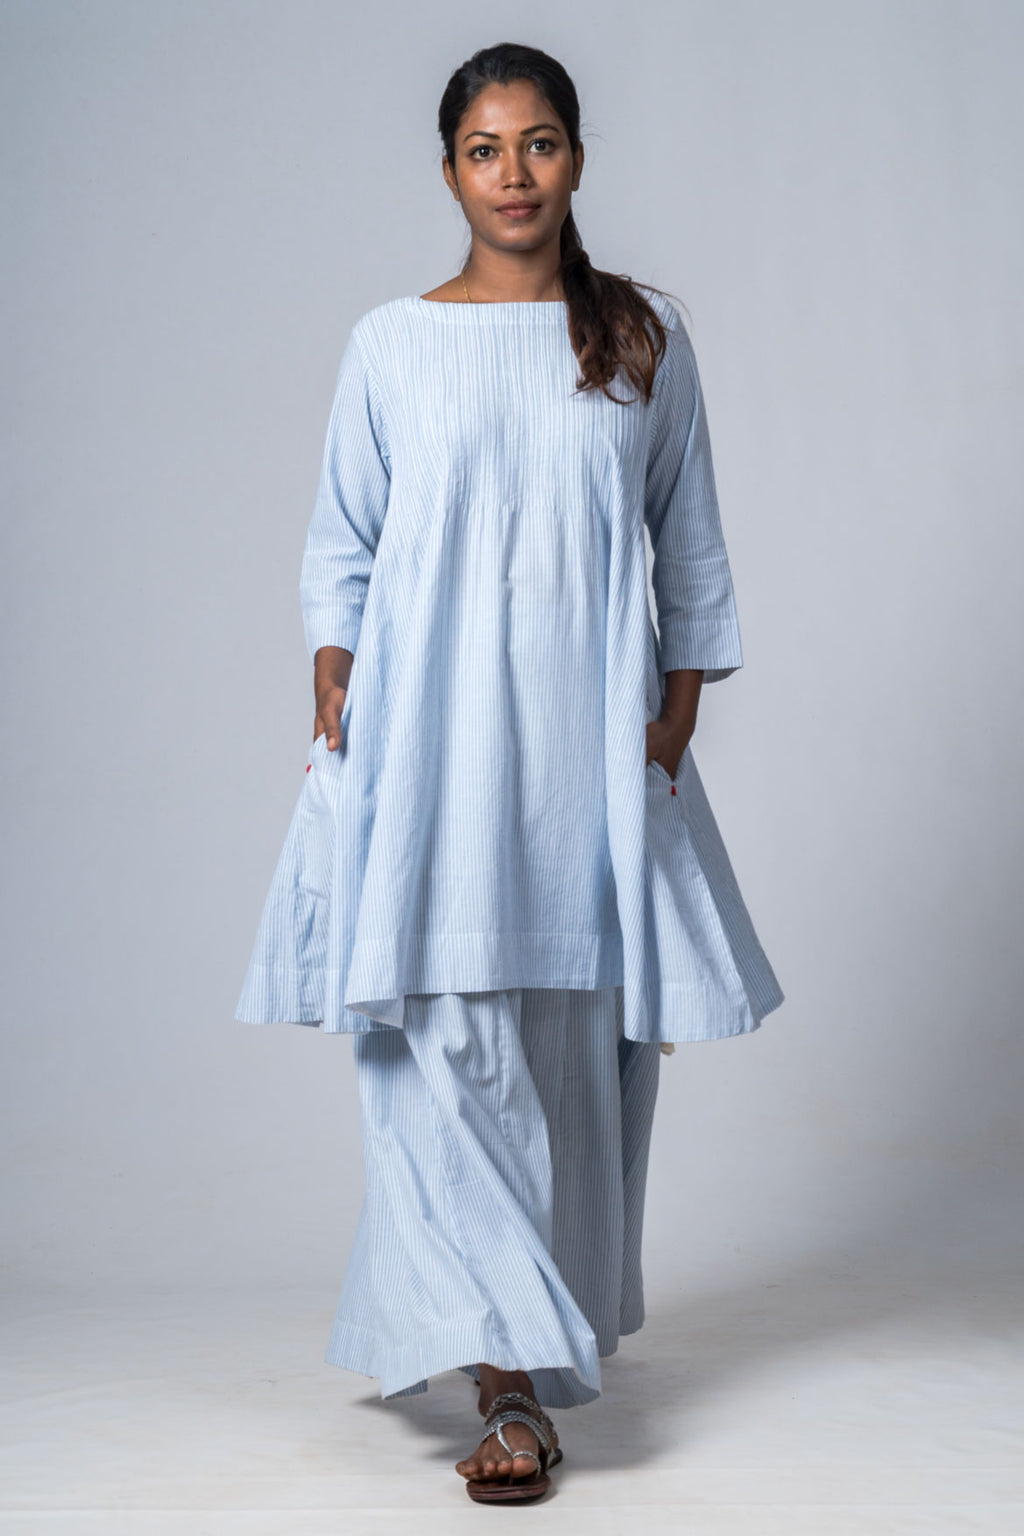 SERENE BLUE  ORGANIC COTTON STRIPED DRESS - Upasana Design Studio